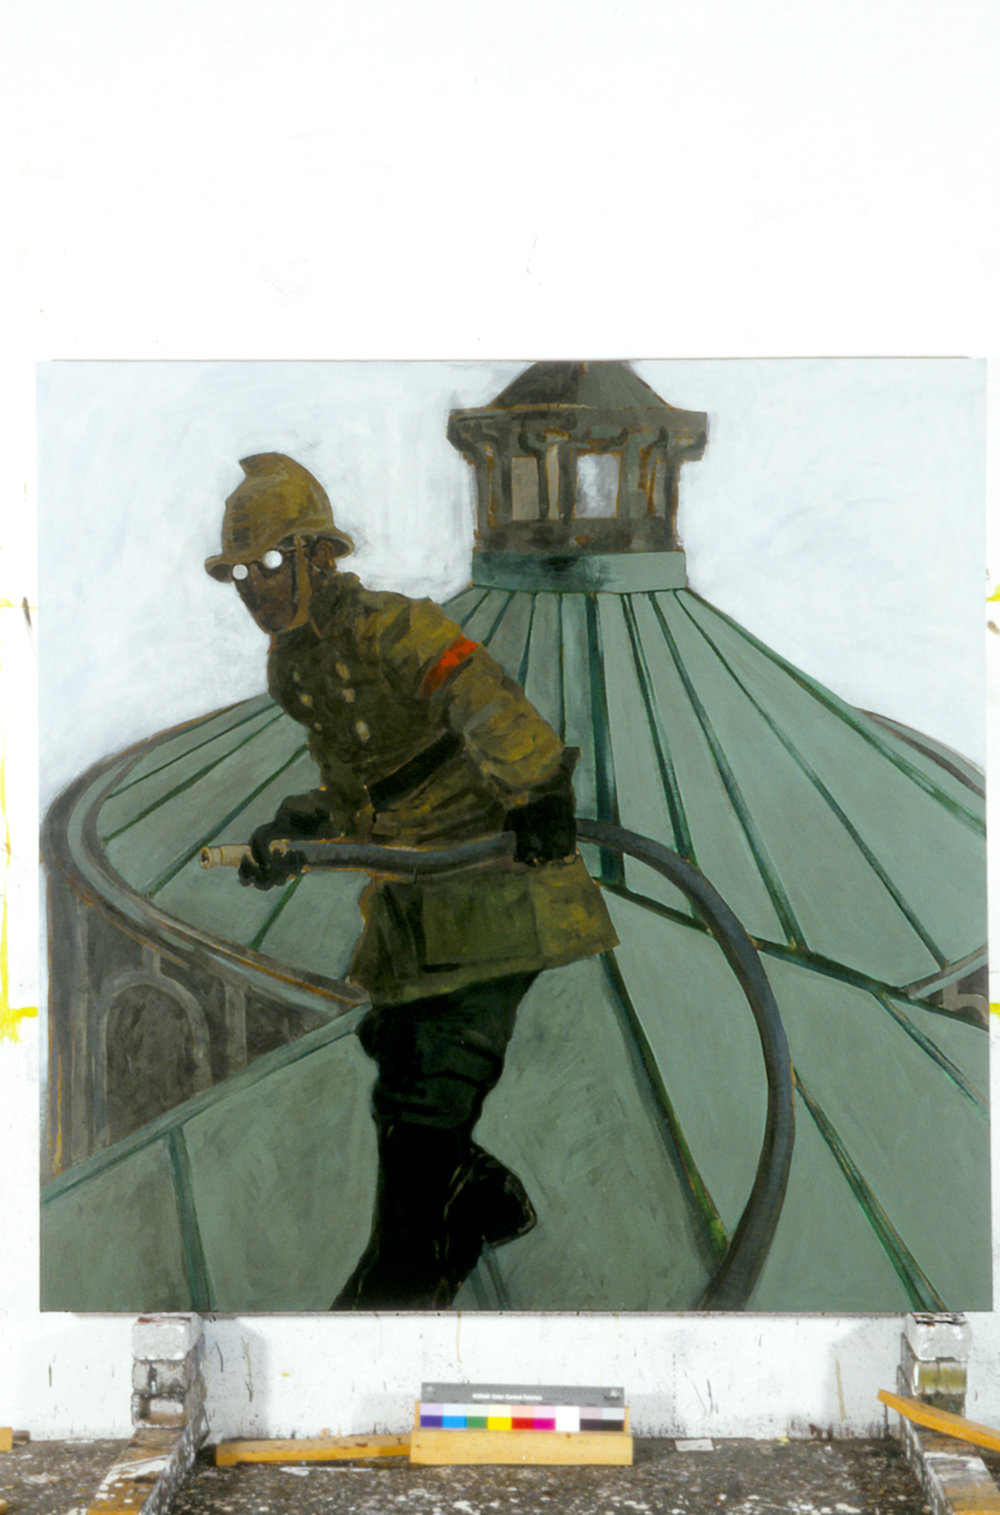 Shostakovitch, dressed as a fireman, on the roof of the Leningrad Conservatoire, 1941